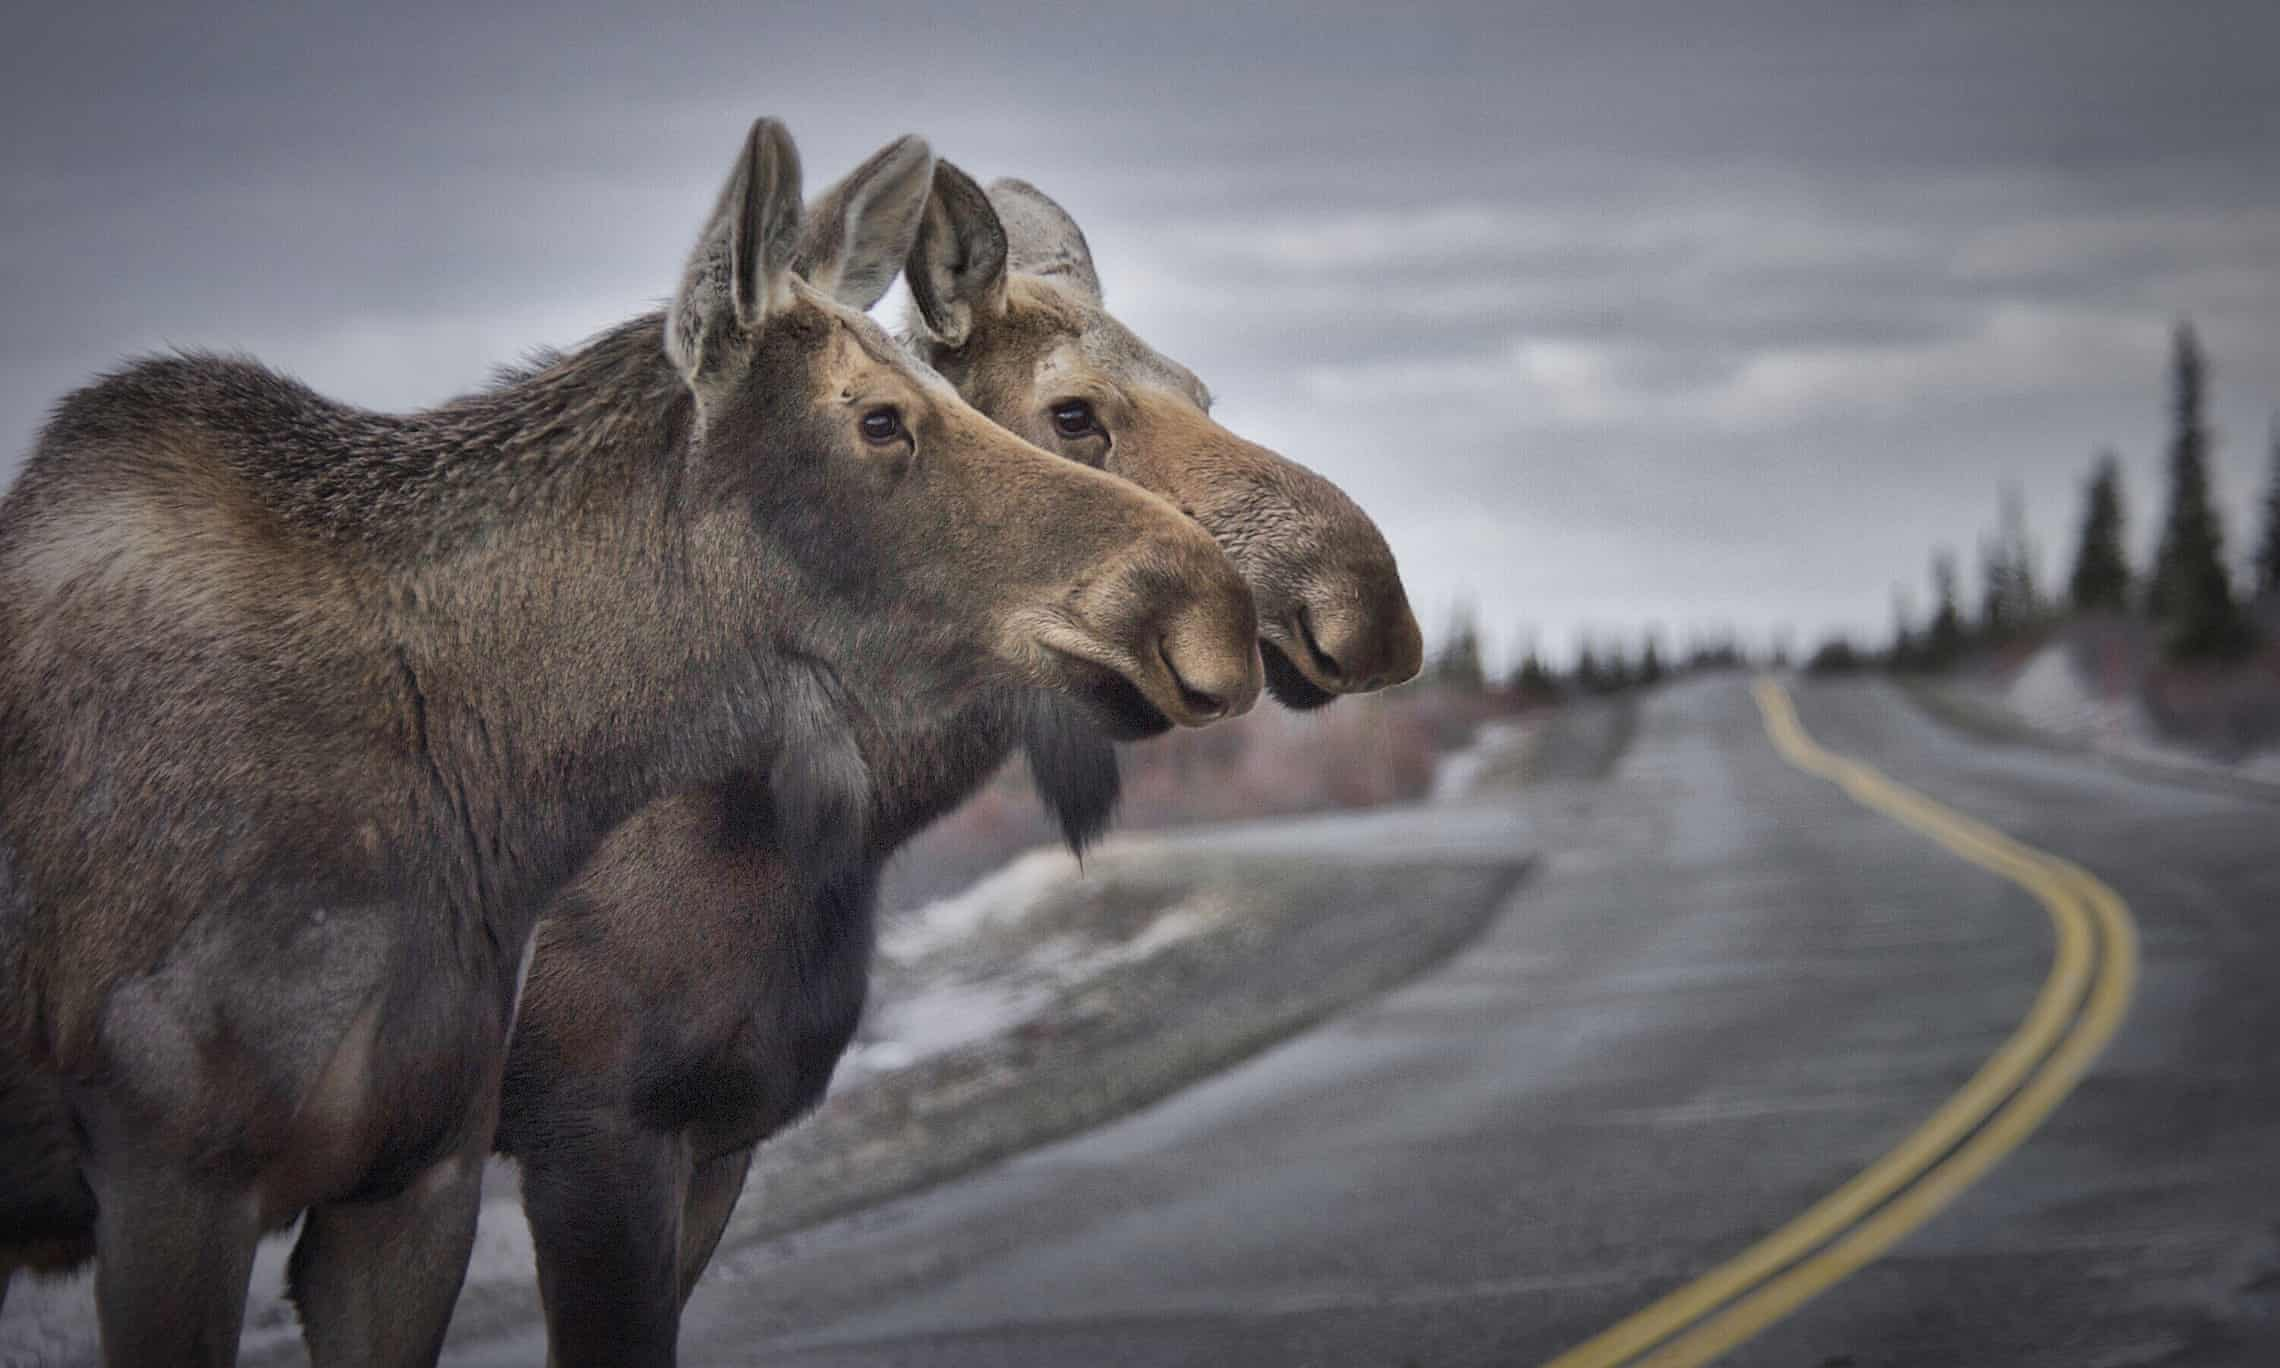 'The truest free-range': why it's time to start eating roadkill (theguardian.com)